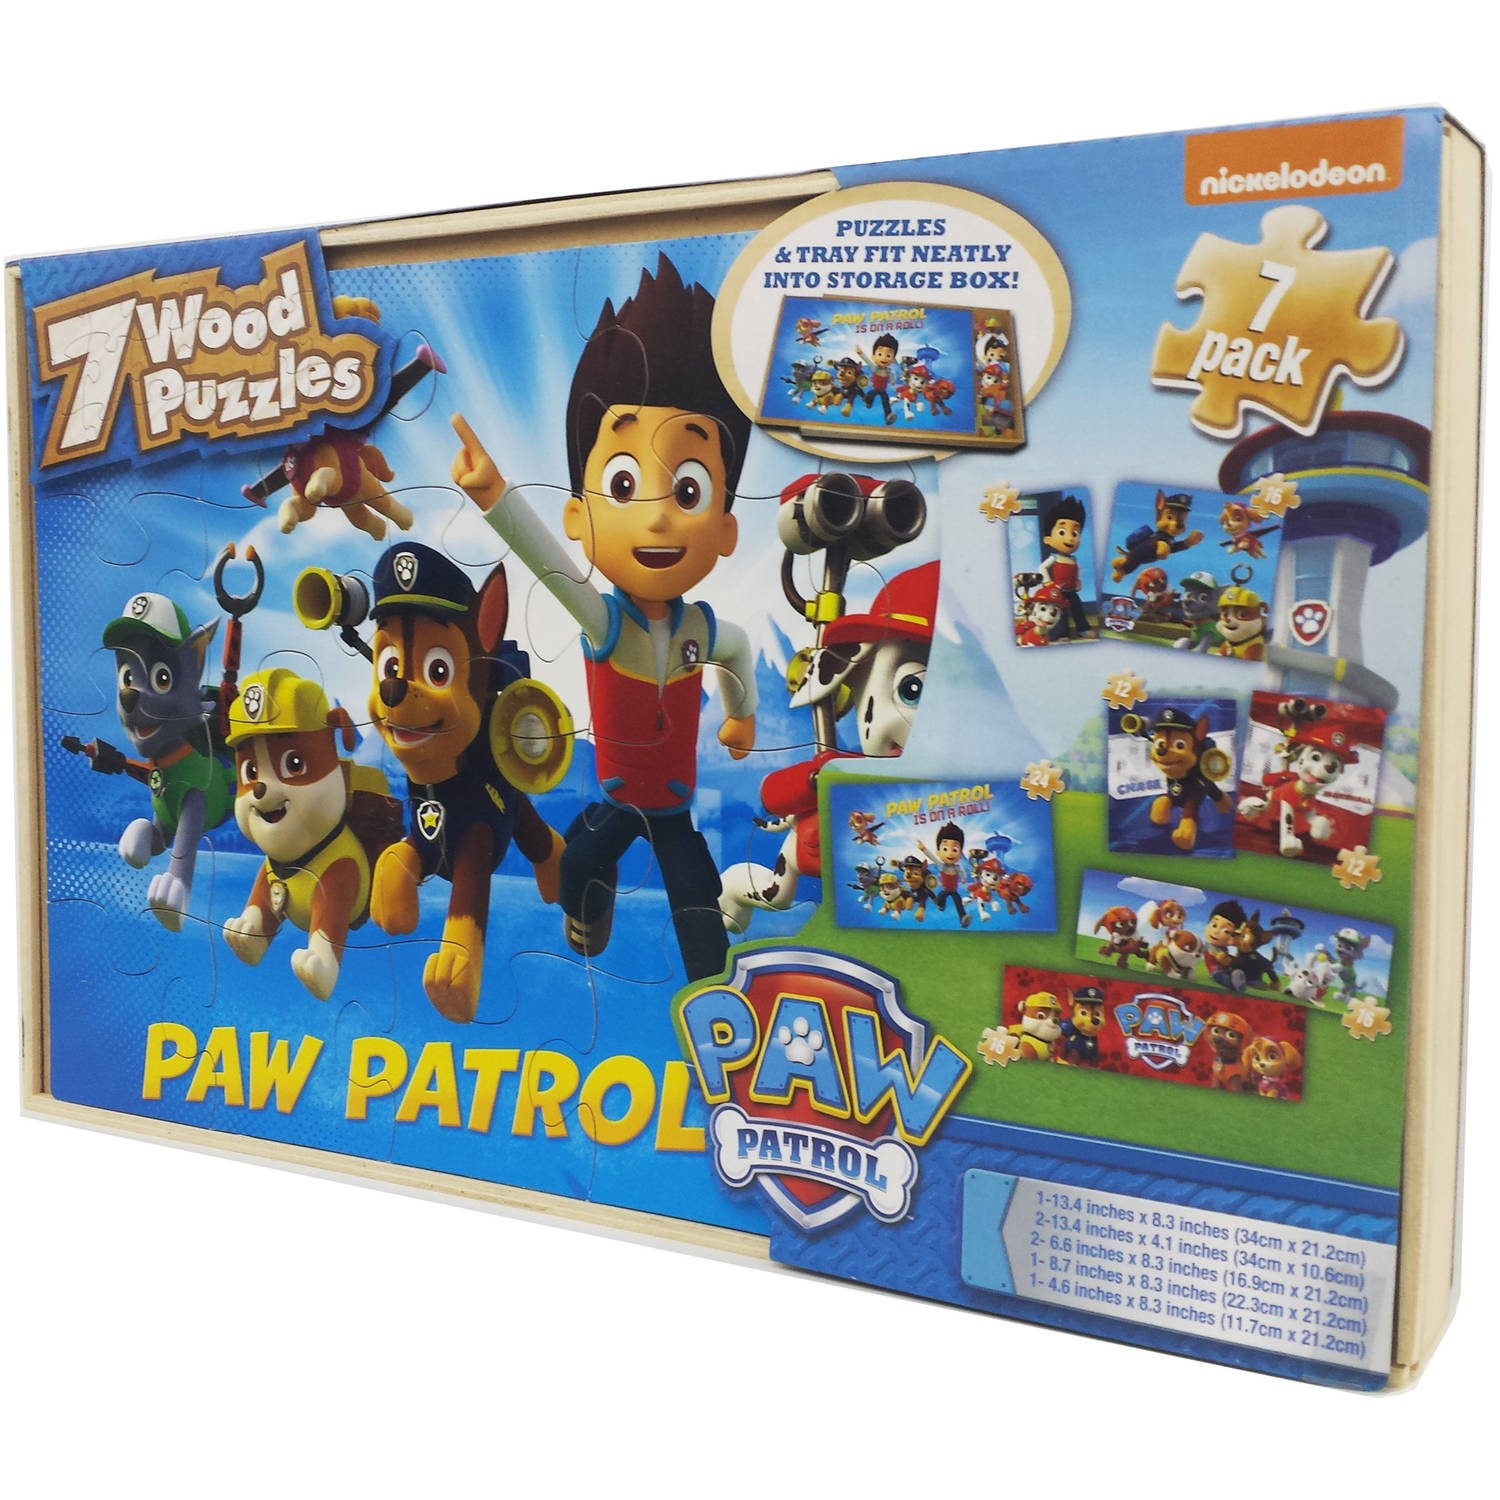 Paw Patrol Kids Toy Organizer Bin Children S Storage Box: Nickelodeon Paw Patrol 7 Wood Jigsaw Puzzles In Wood